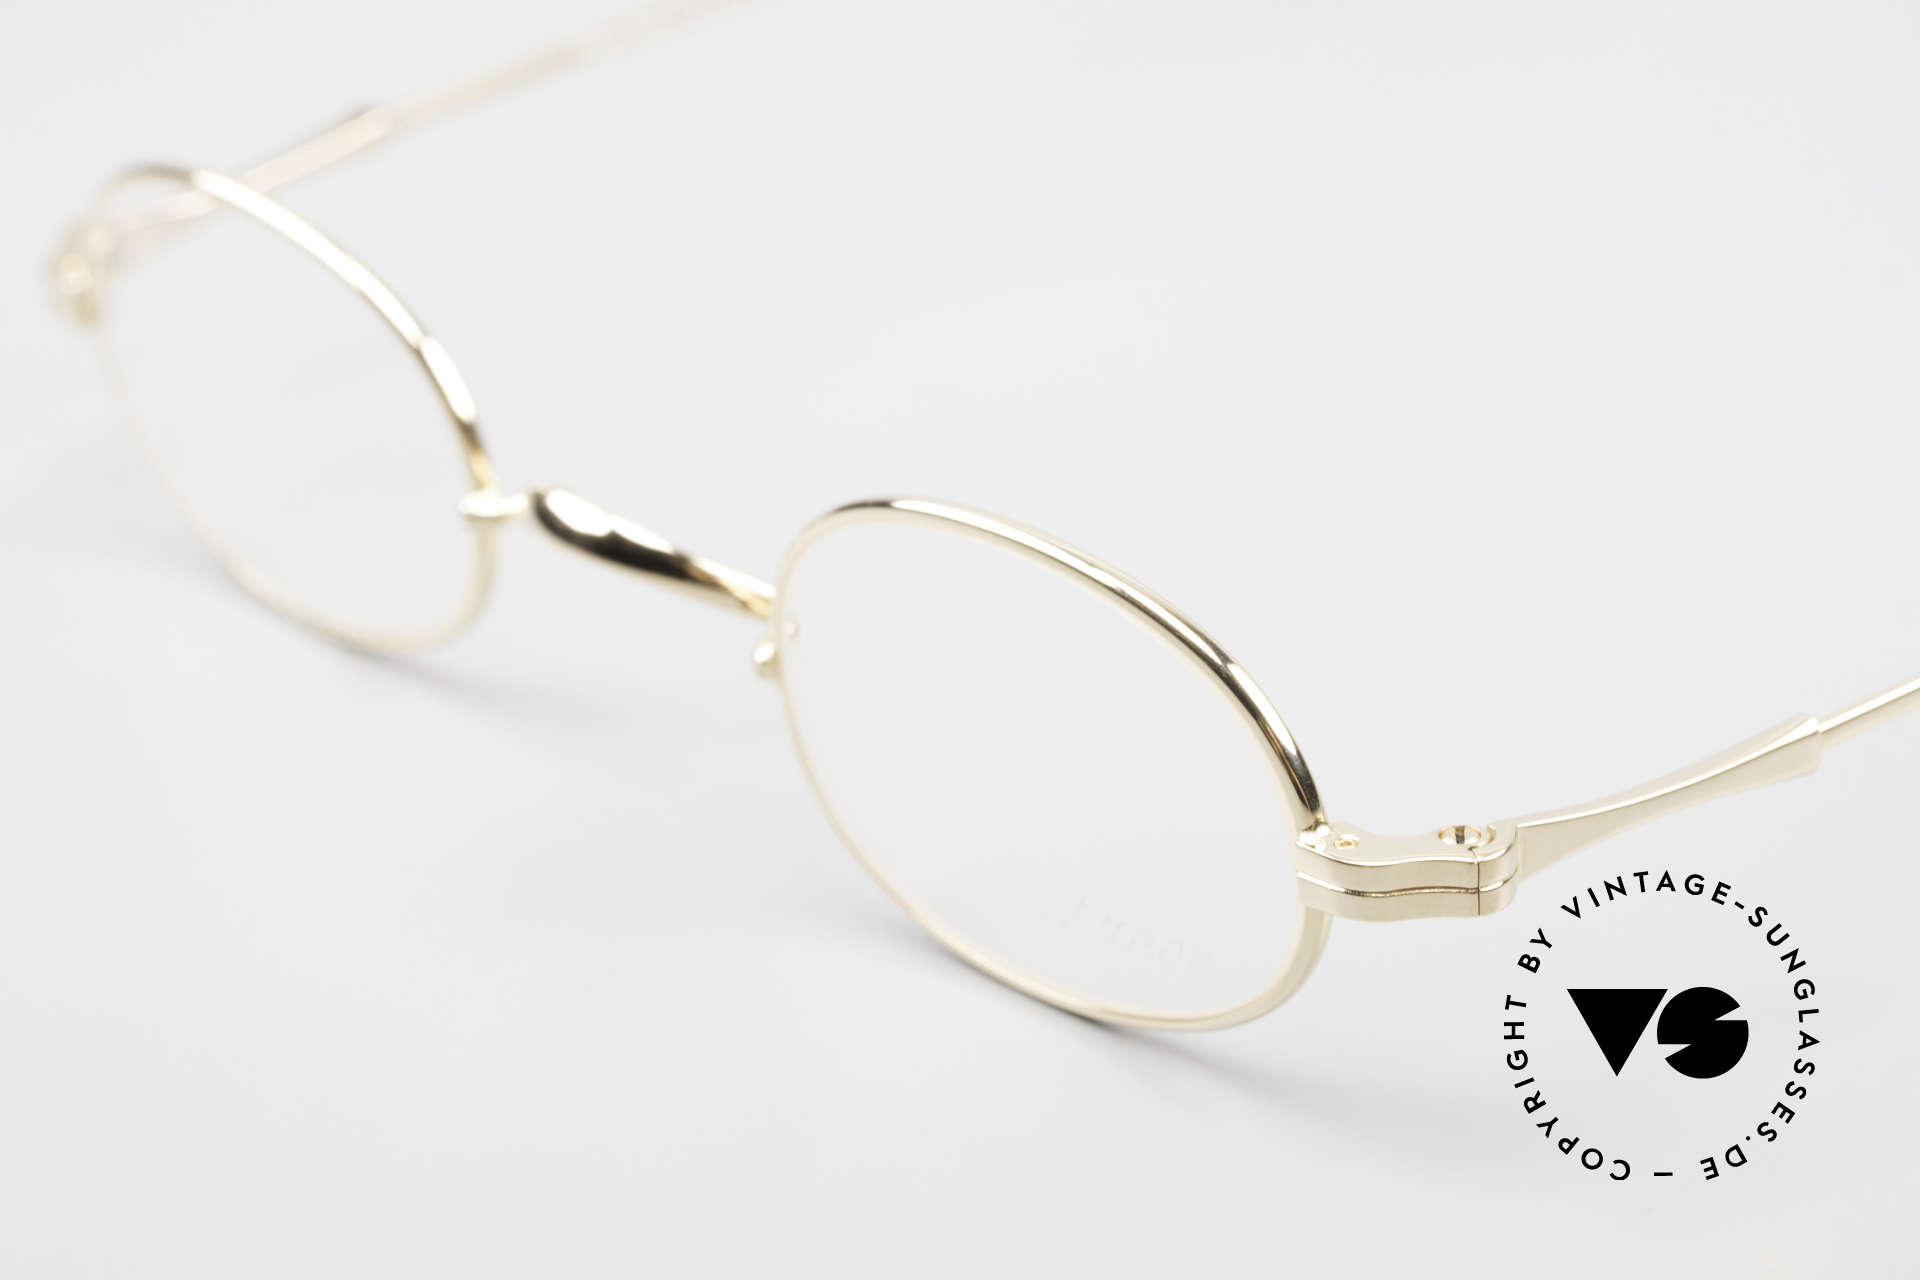 Lunor II 08 Oval Lunor Frame Gold Plated, unworn single item (for all lovers of quality), true rarity, Made for Men and Women